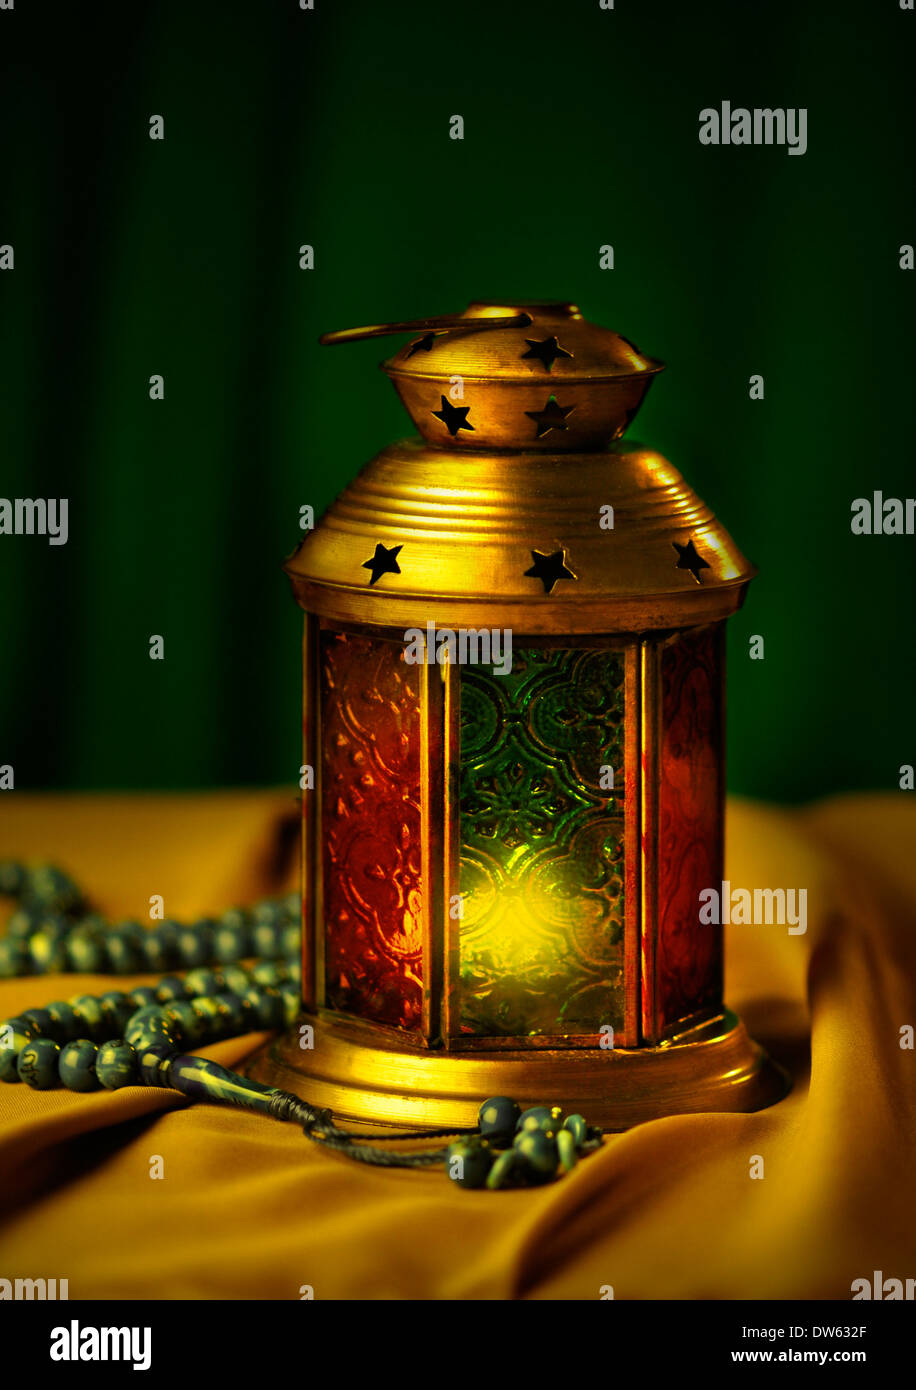 Ramadan Greetings Stock Photos Ramadan Greetings Stock Images Alamy